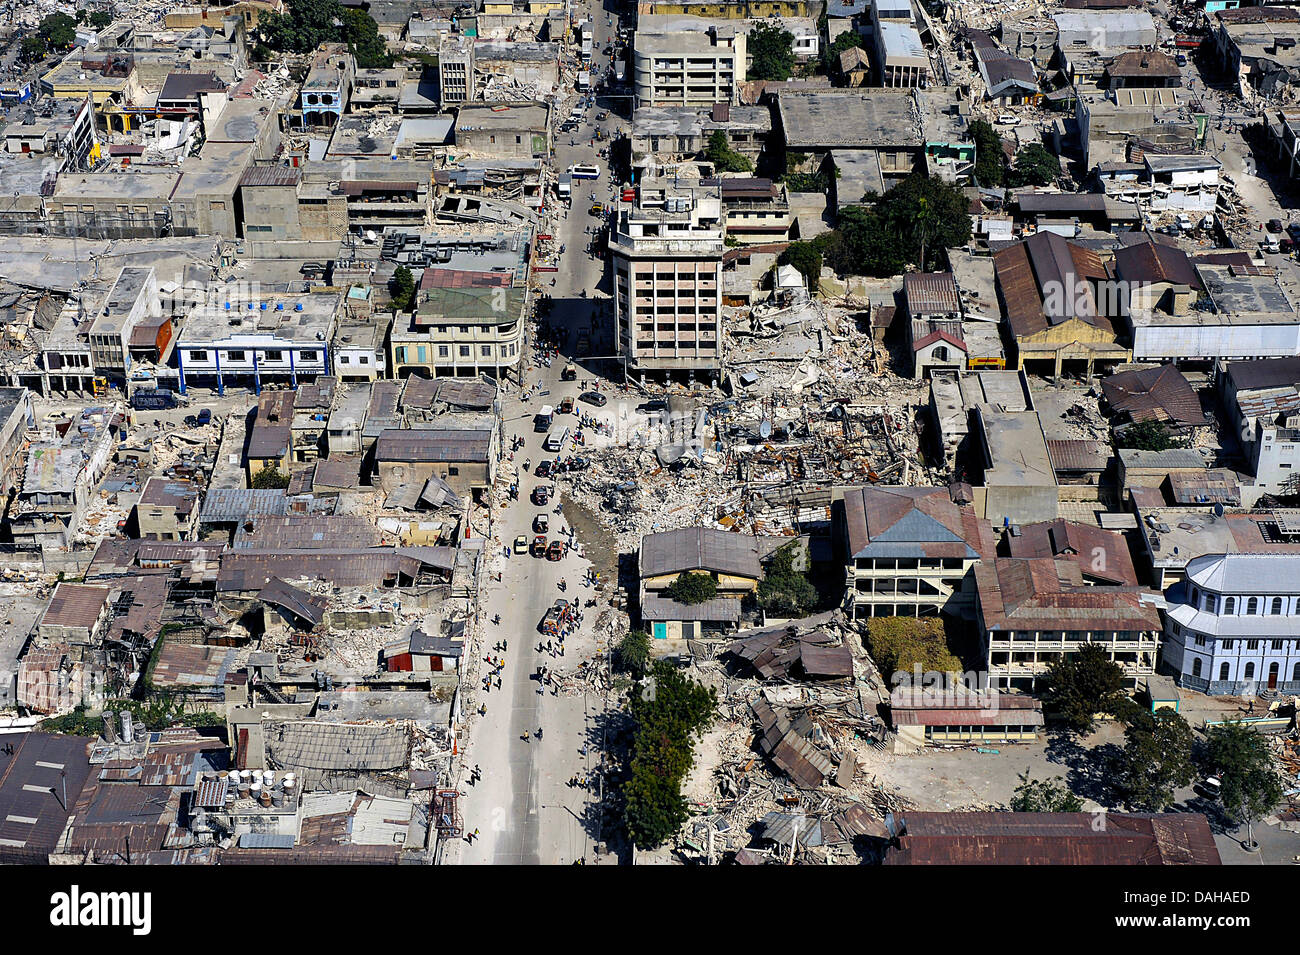 Aerial view of damaged buildings in the aftermath of a 7.0 magnitude earthquake killing 220,000 people January 22, - Stock Image